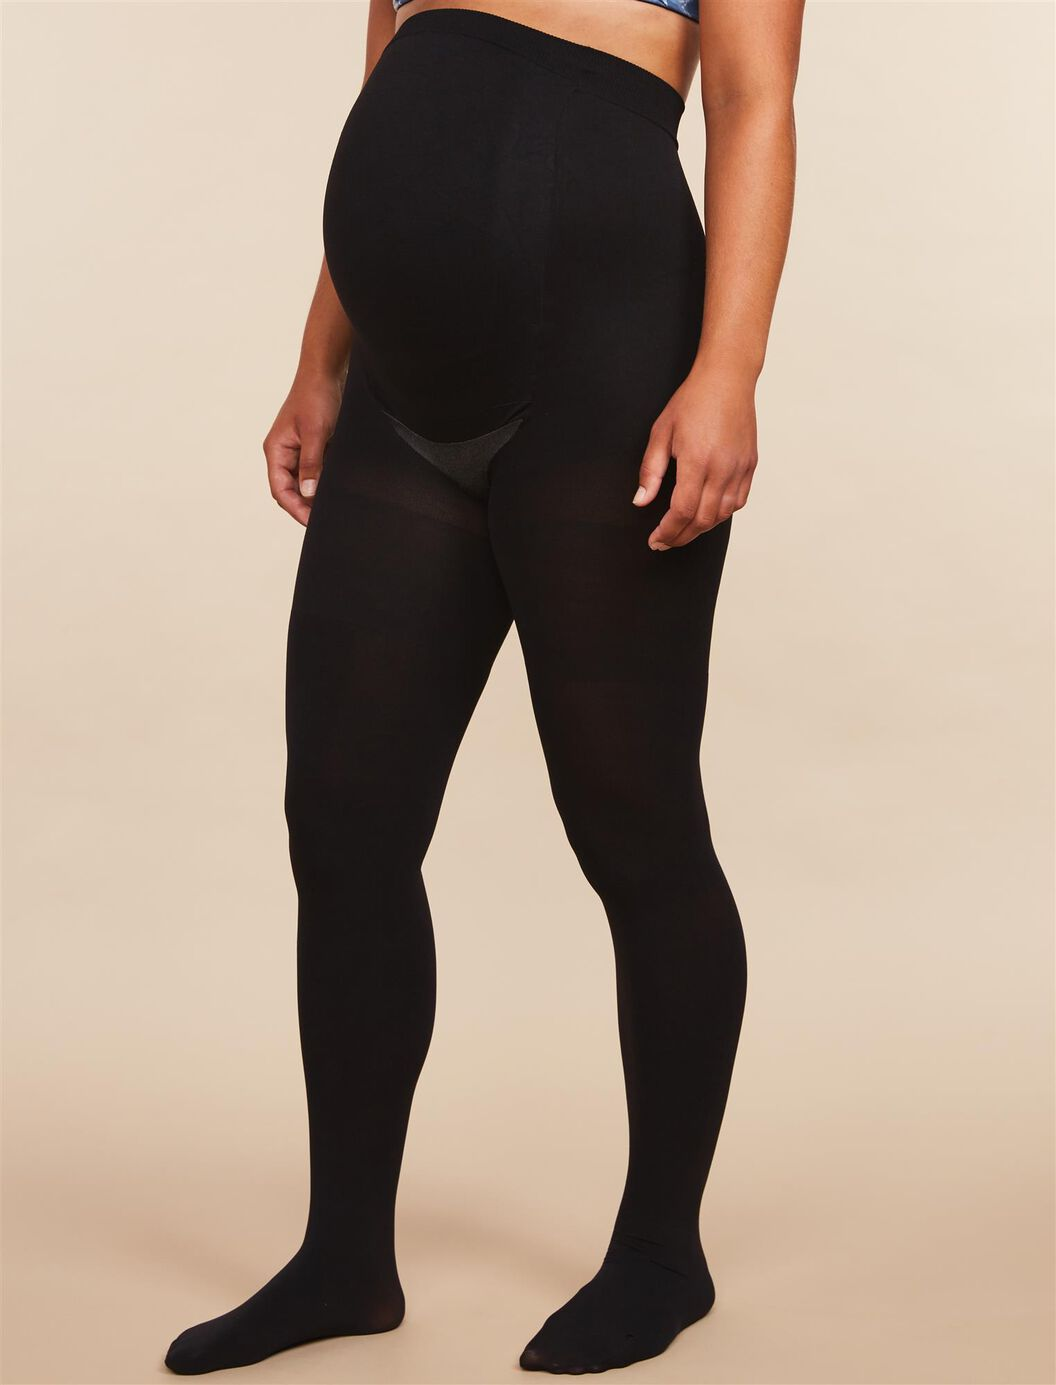 Assets By Sara Blakely Opaque Maternity Tights at Motherhood Maternity in Victor, NY | Tuggl